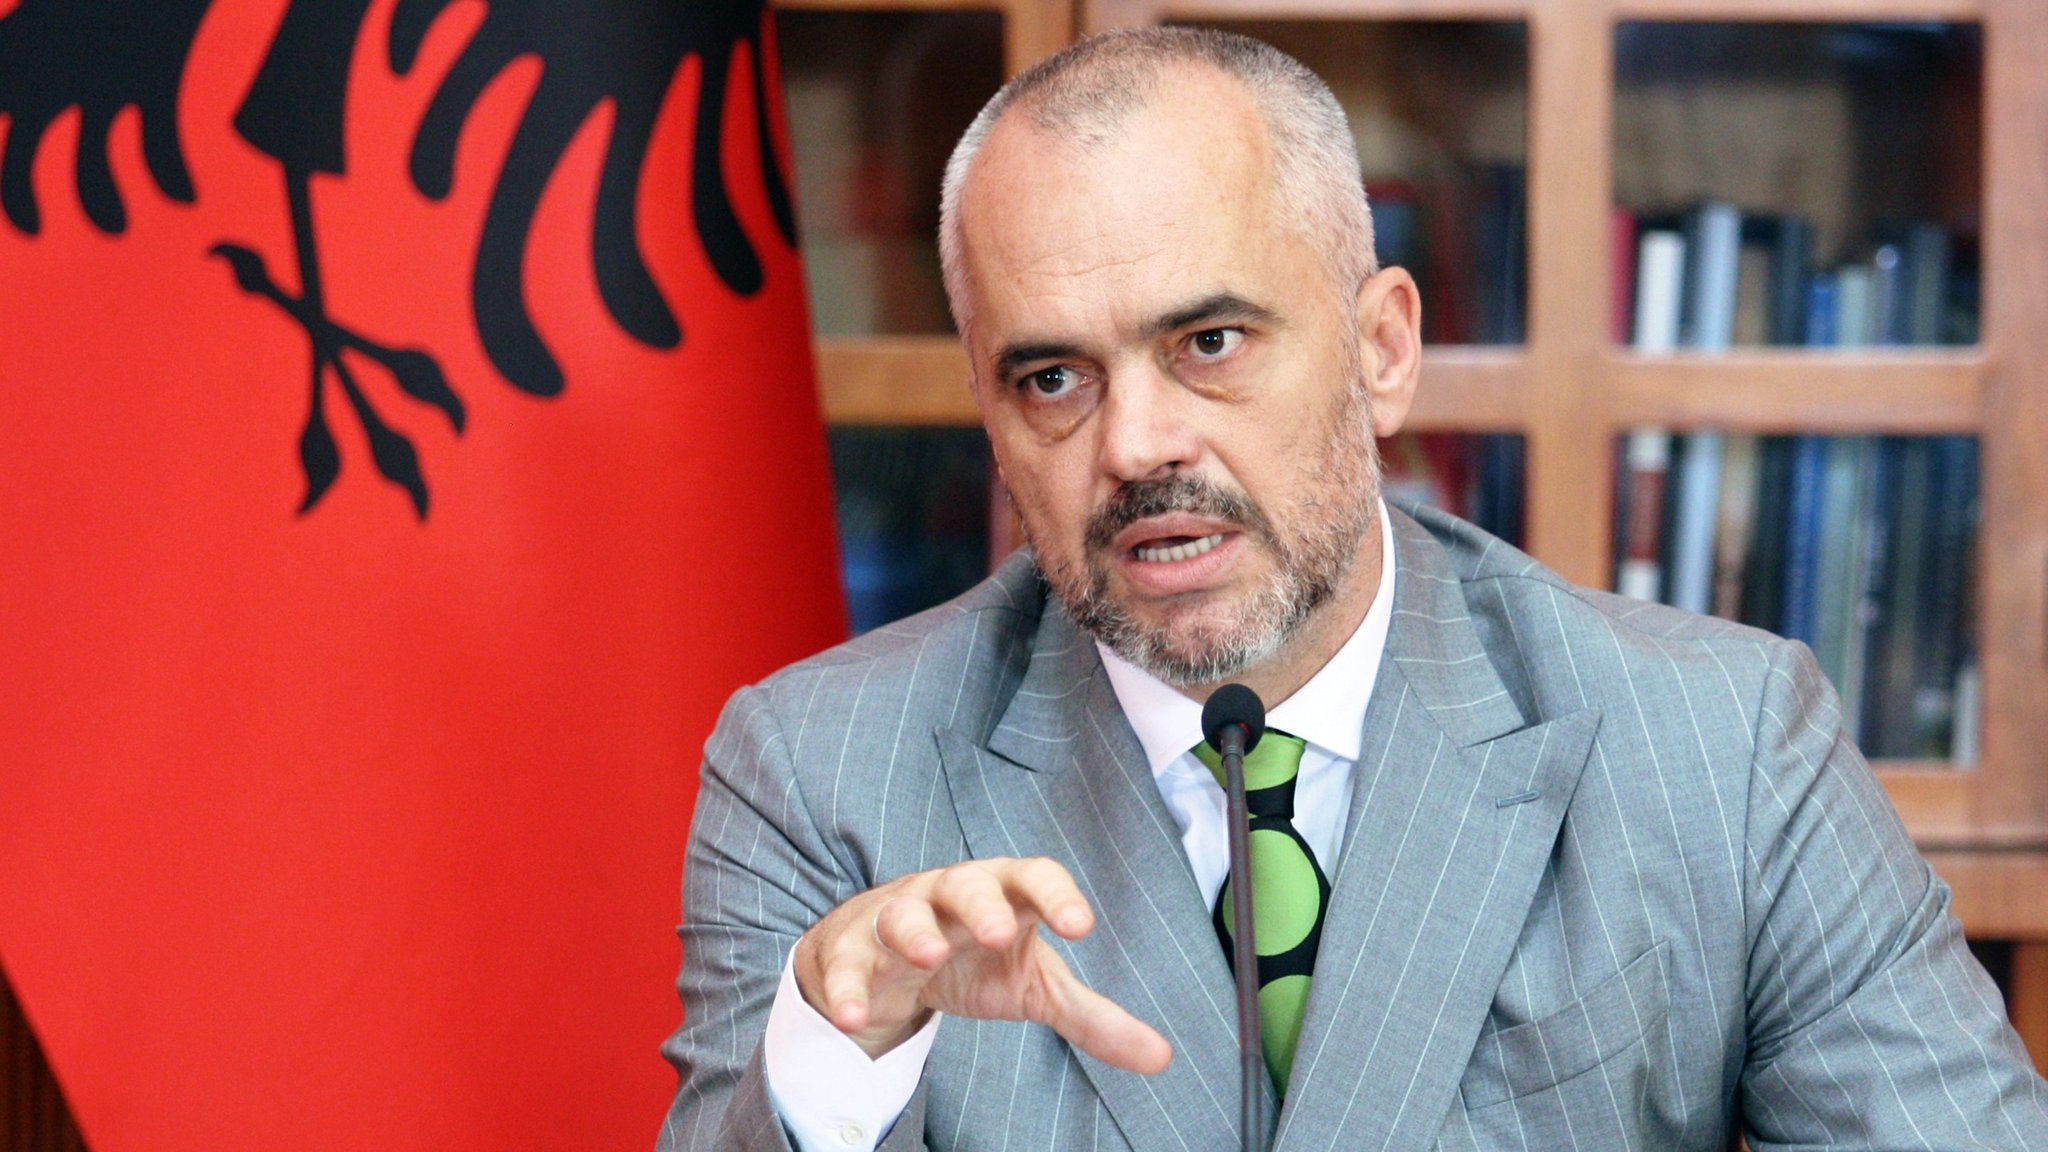 Rama: The problem lies in the way the EU operates and not in Albania or the Balkans